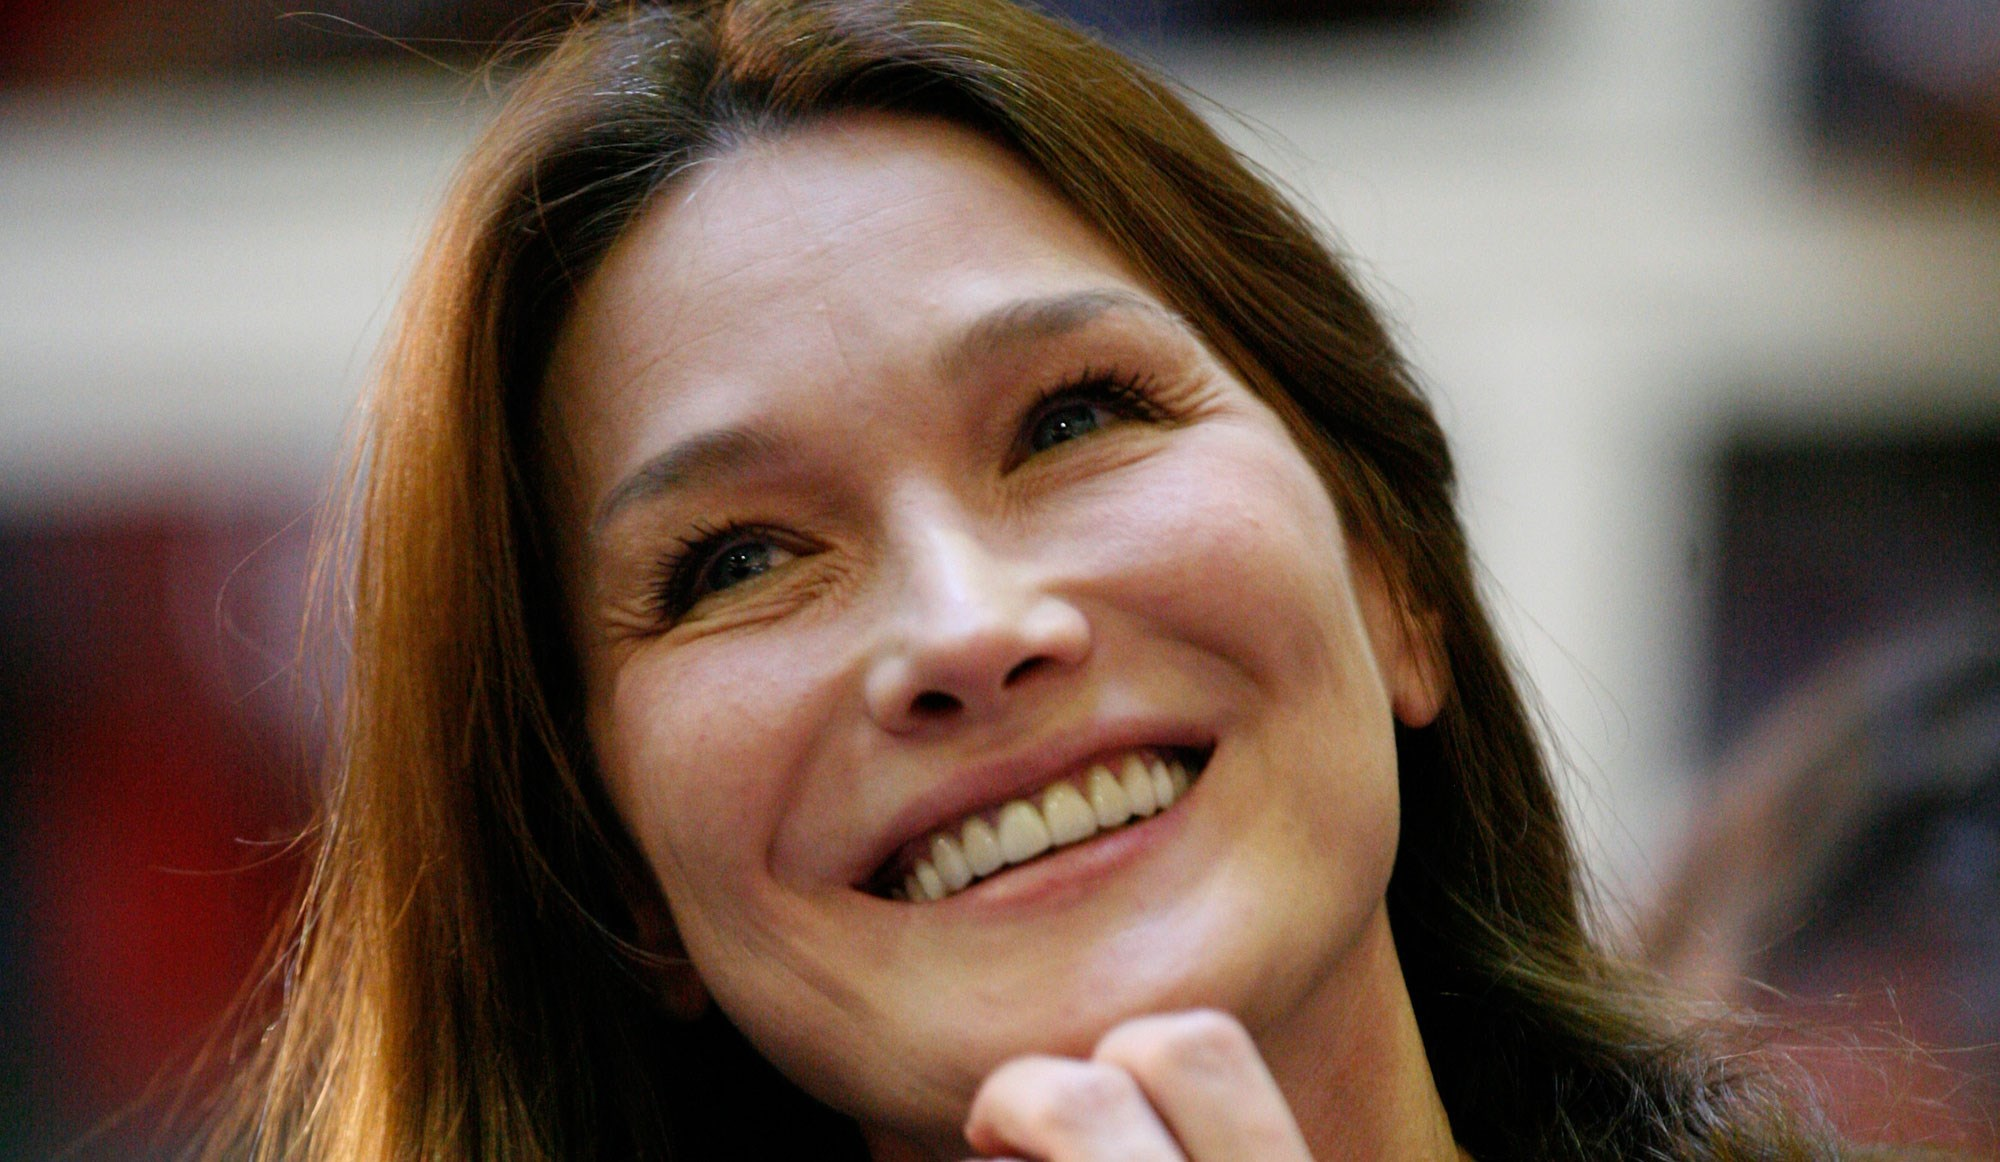 Carla bruni known people famous people news and for Bruni arredamento